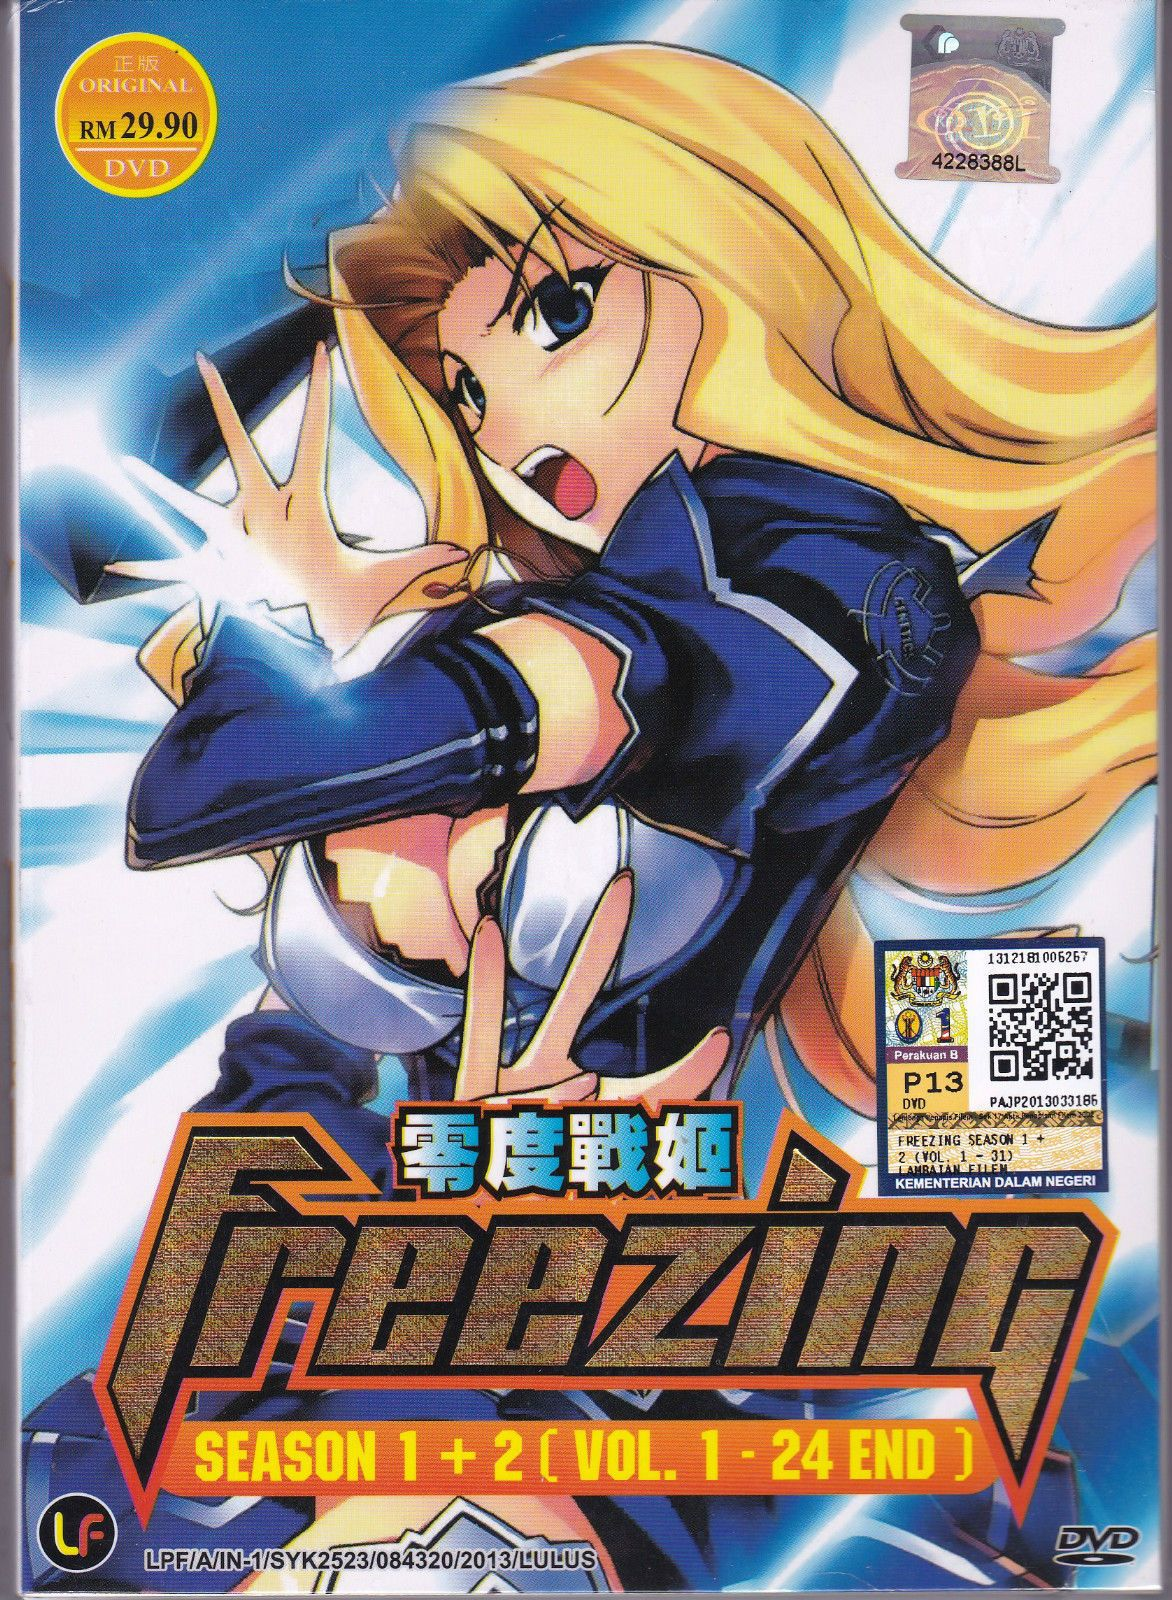 DVD ANIME FREEZING Season 1 2 Vol1 24End Freezing Vibration Region All